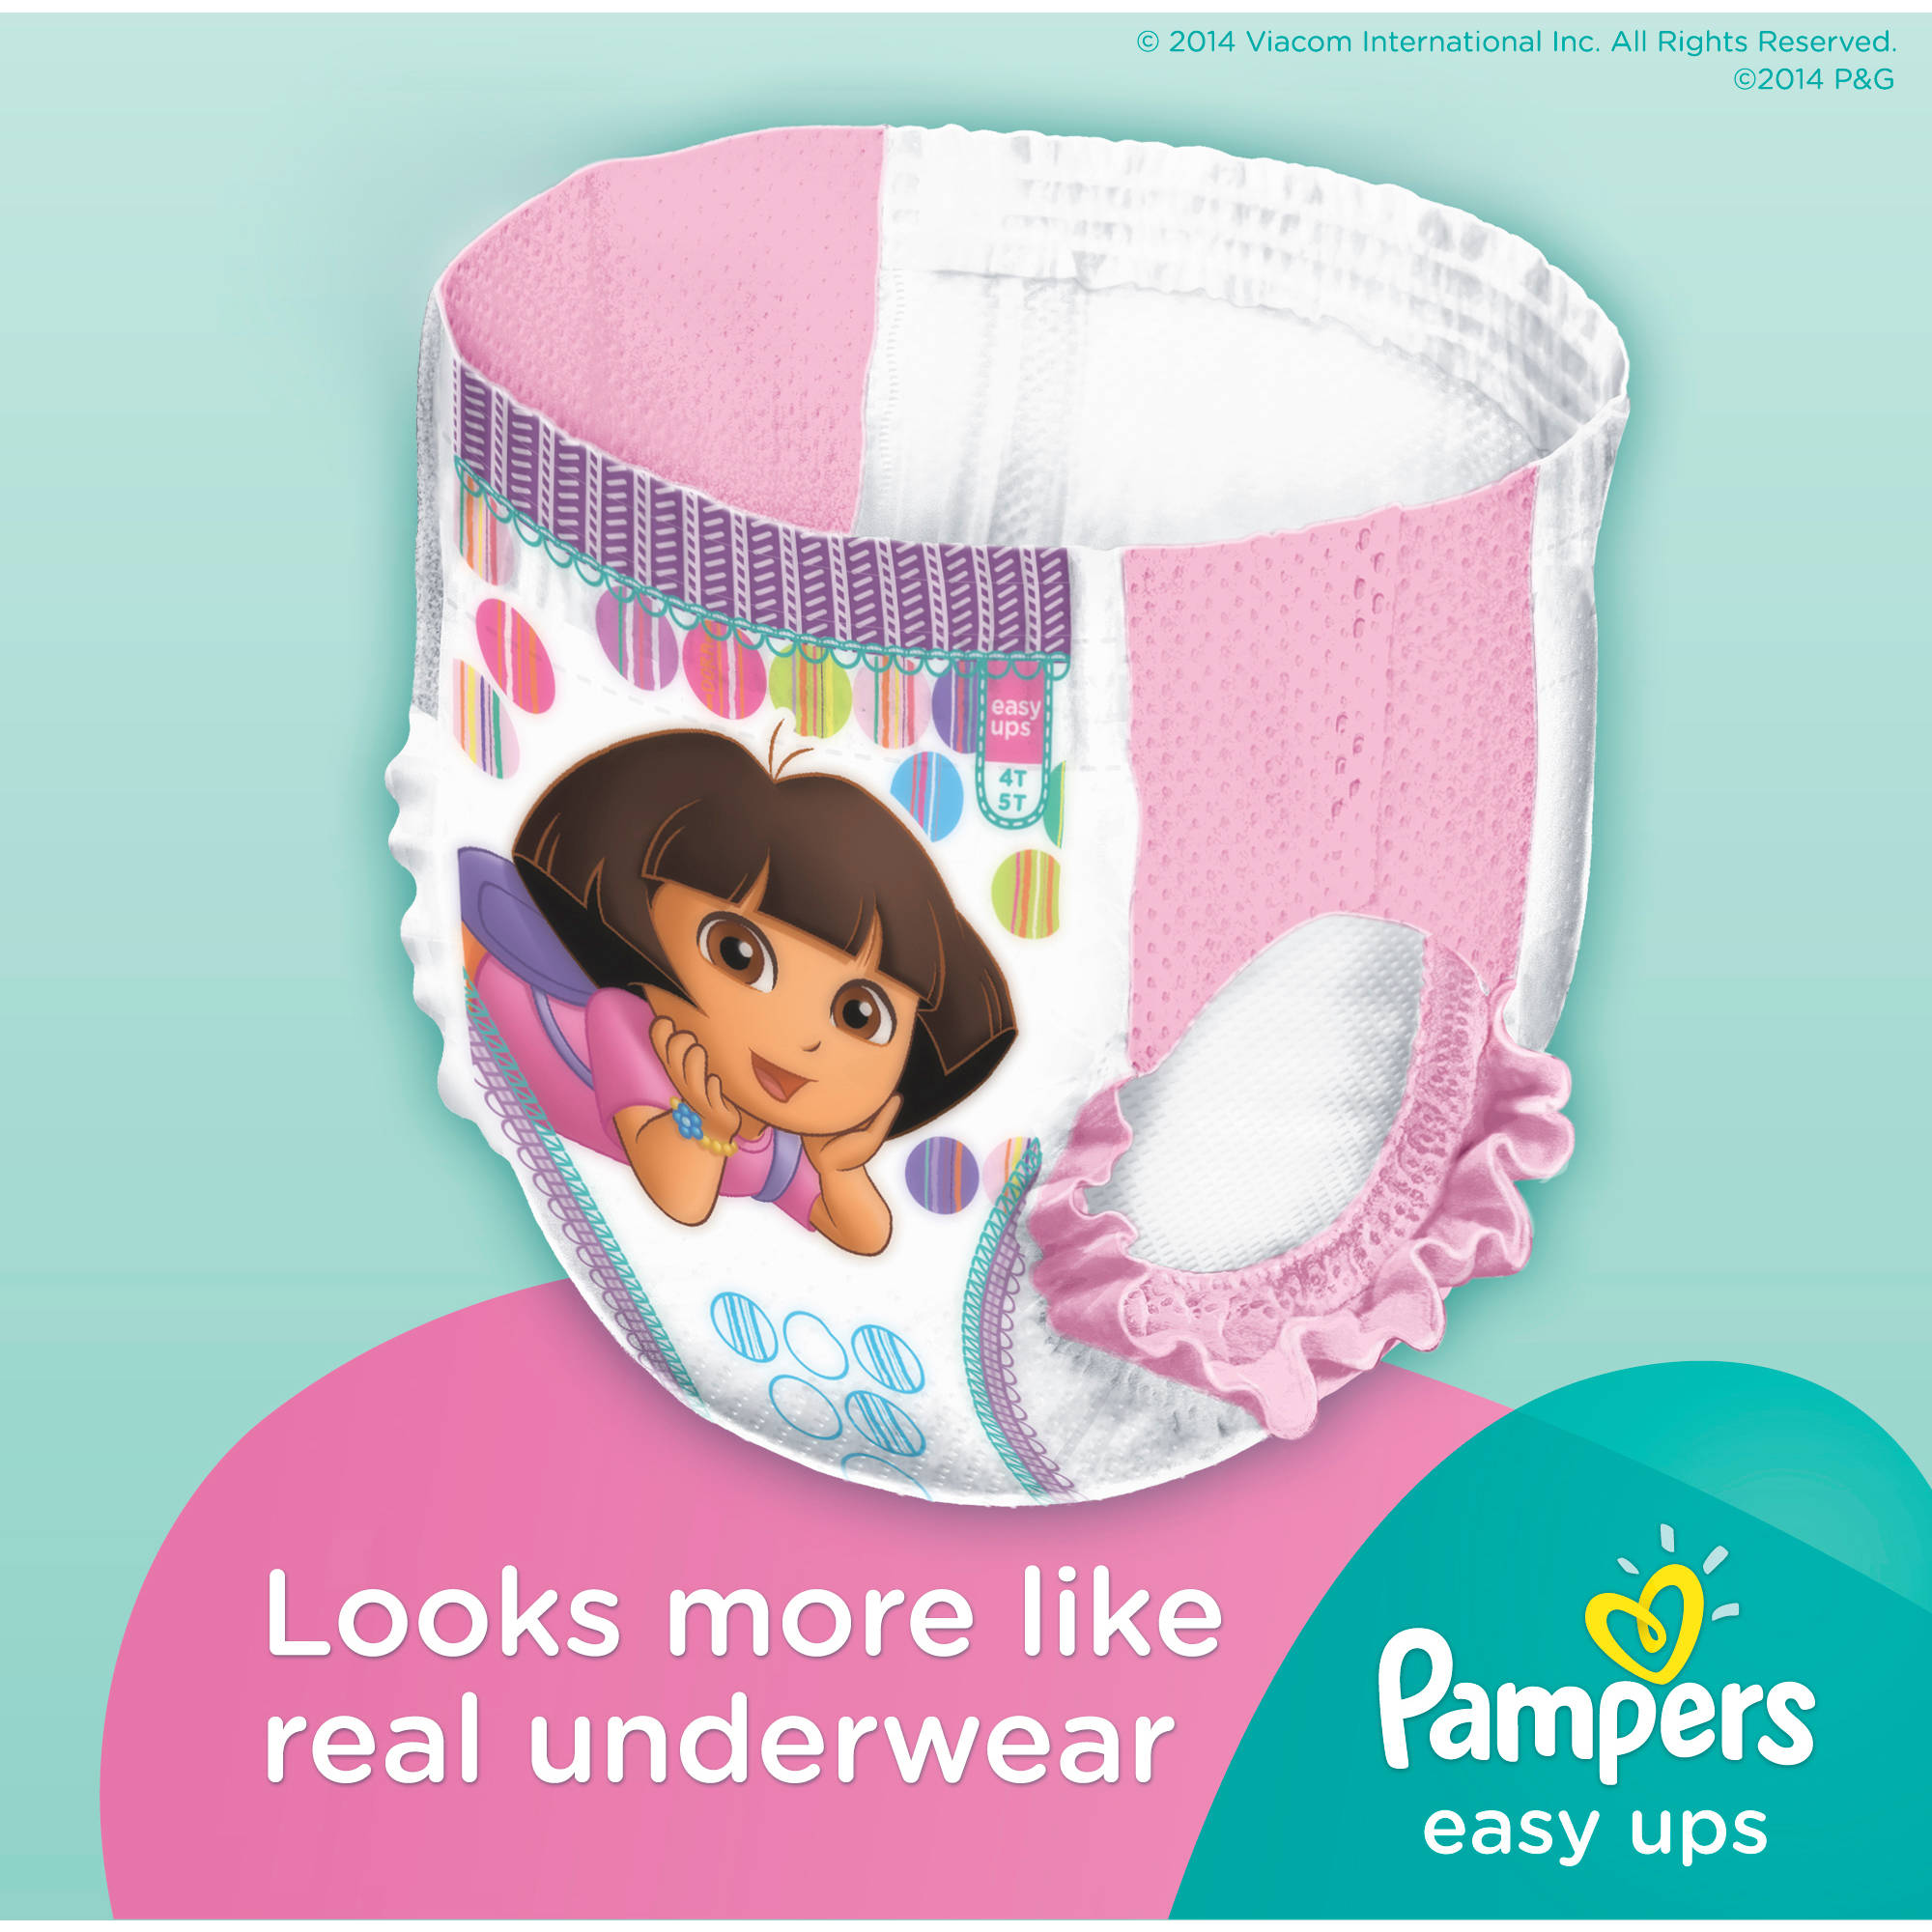 Pampers easy ups girls training pants size 4t 5t 19 pants pampers easy ups girls training pants size 4t 5t 19 pants walmart nvjuhfo Image collections